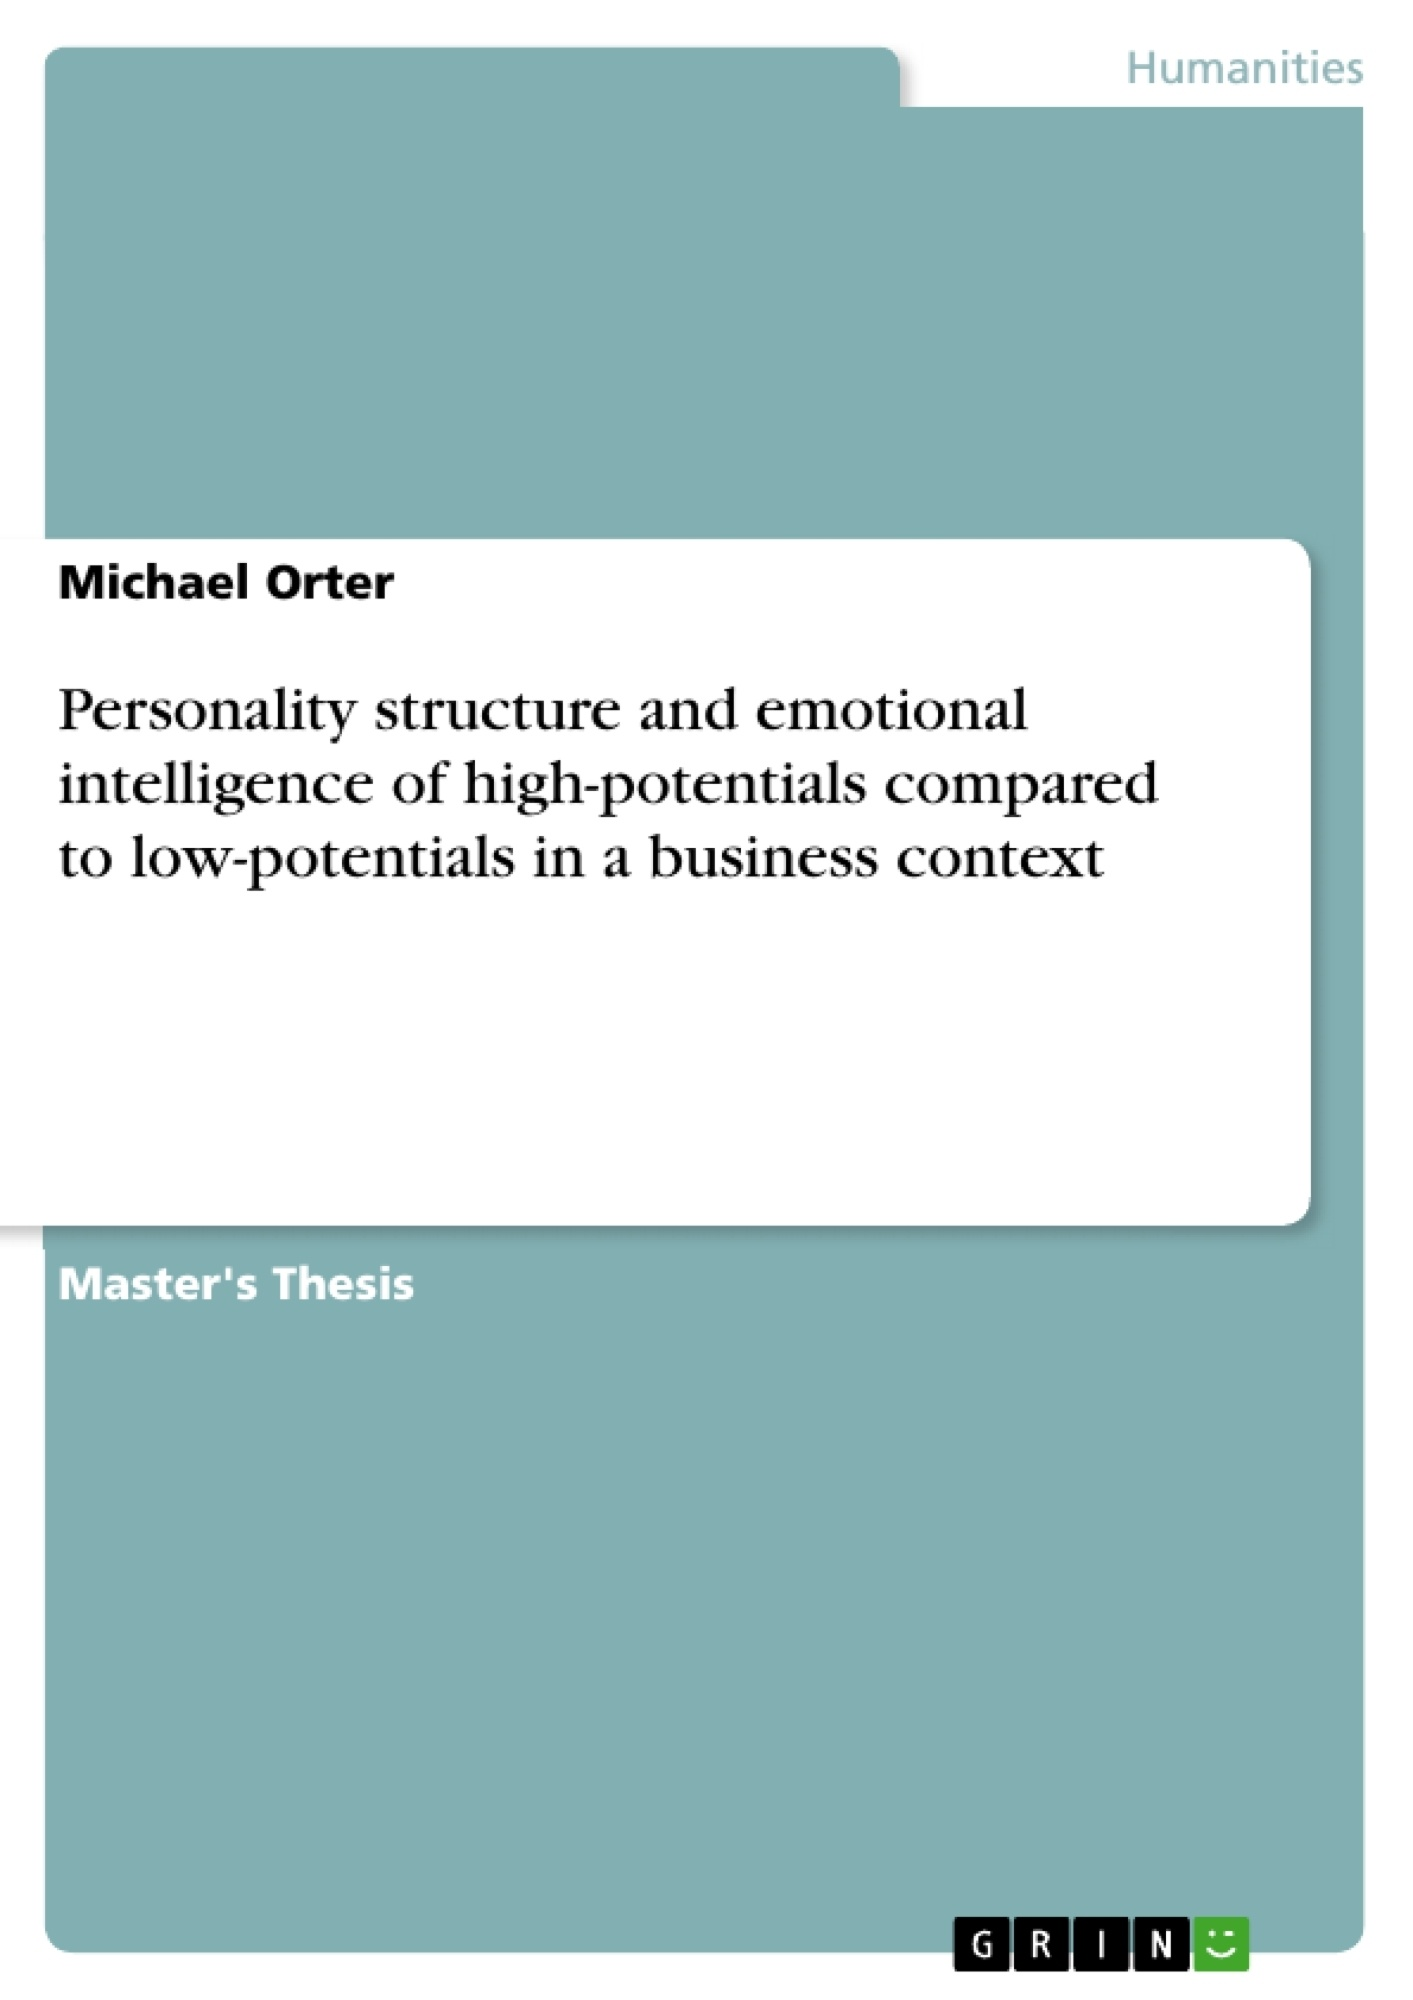 Title: Personality structure and emotional intelligence of high-potentials compared to low-potentials in a business context